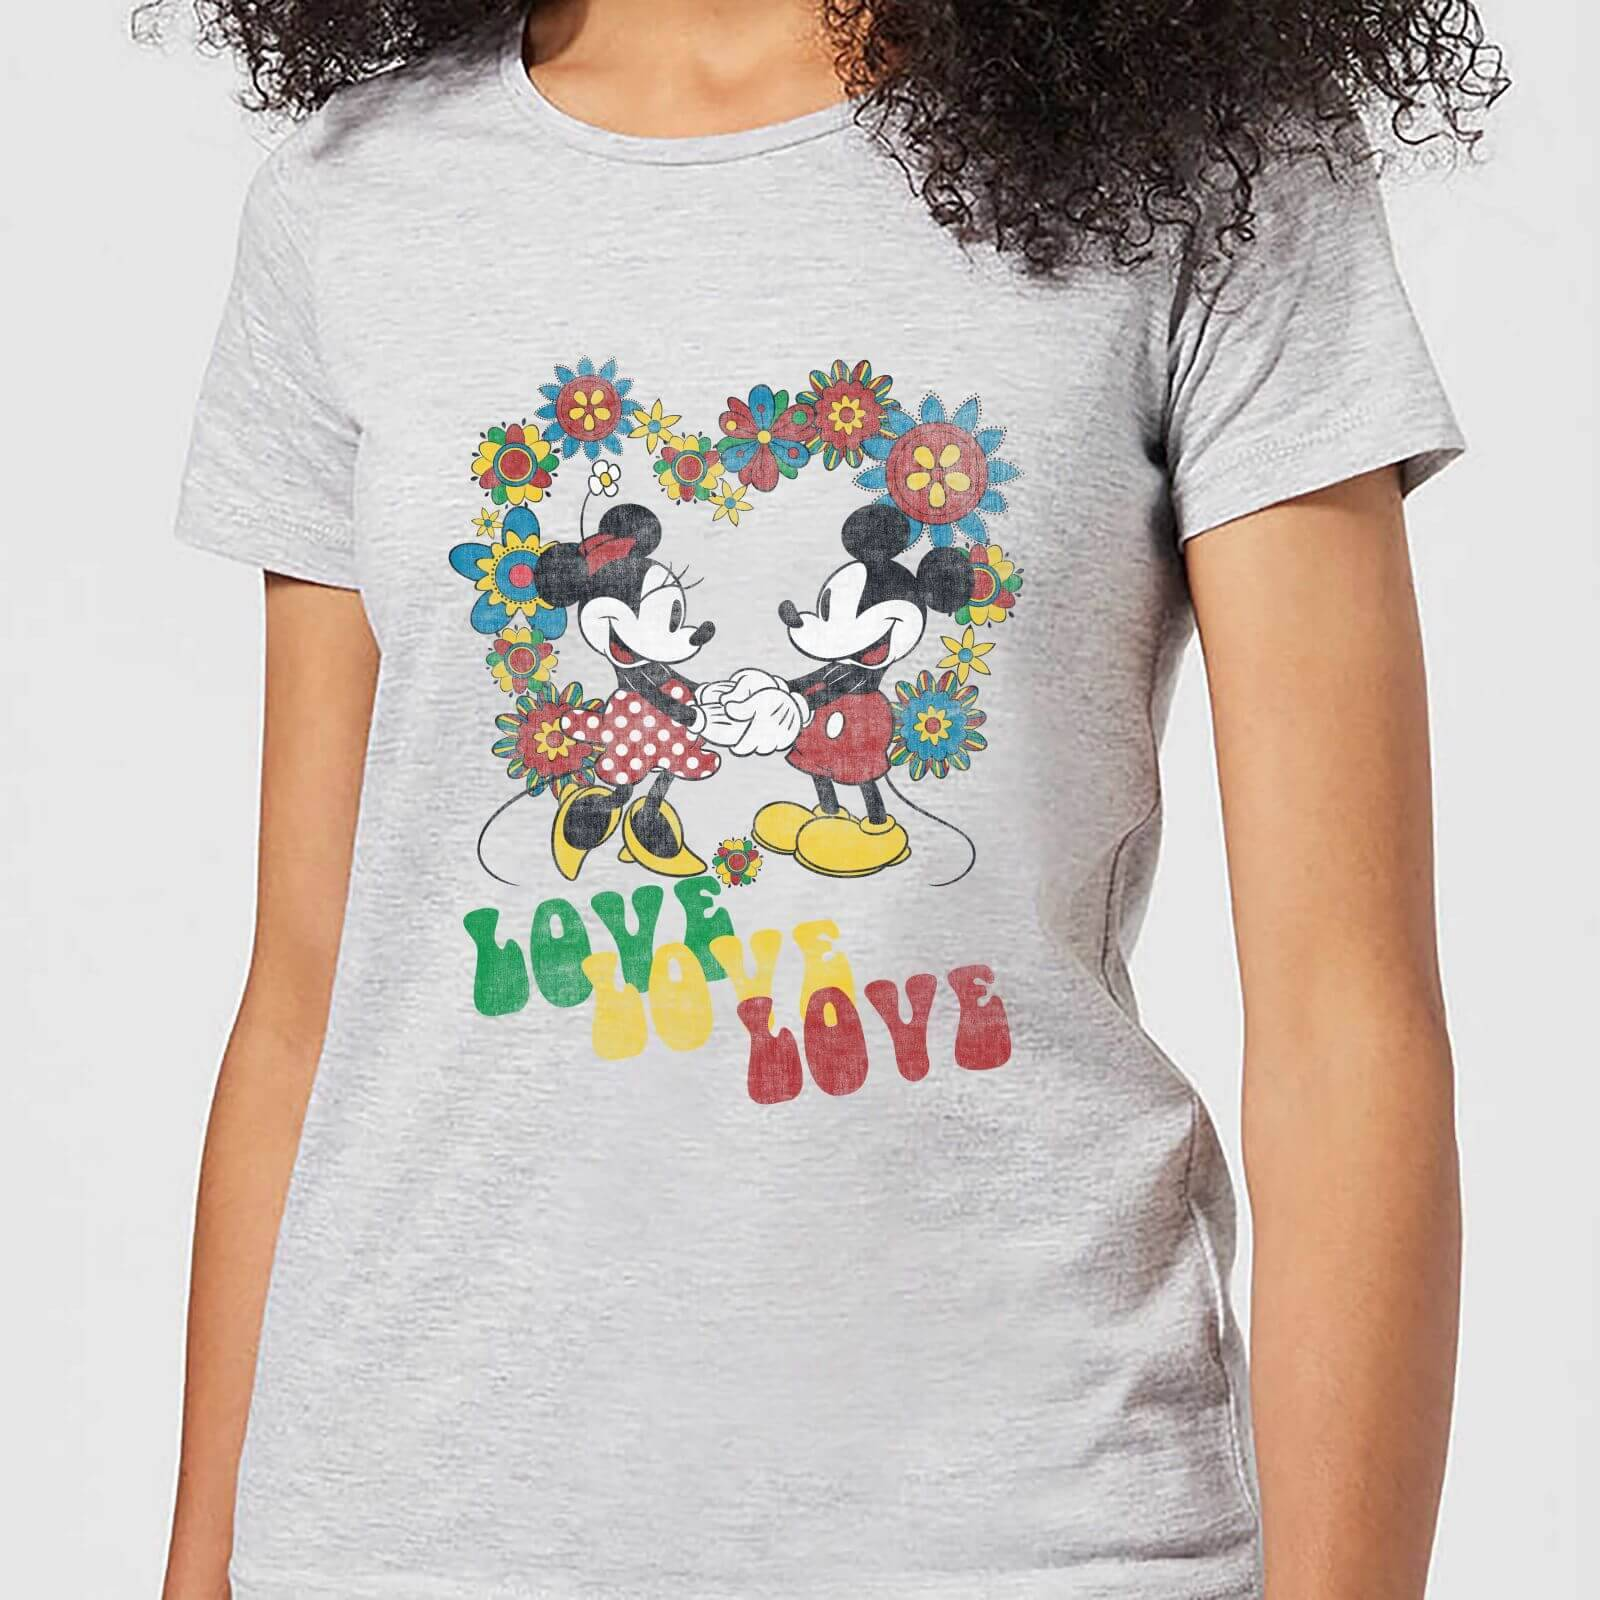 Disney Mickey Mouse Hippie Love Women's T-Shirt - Grey - S - Grey